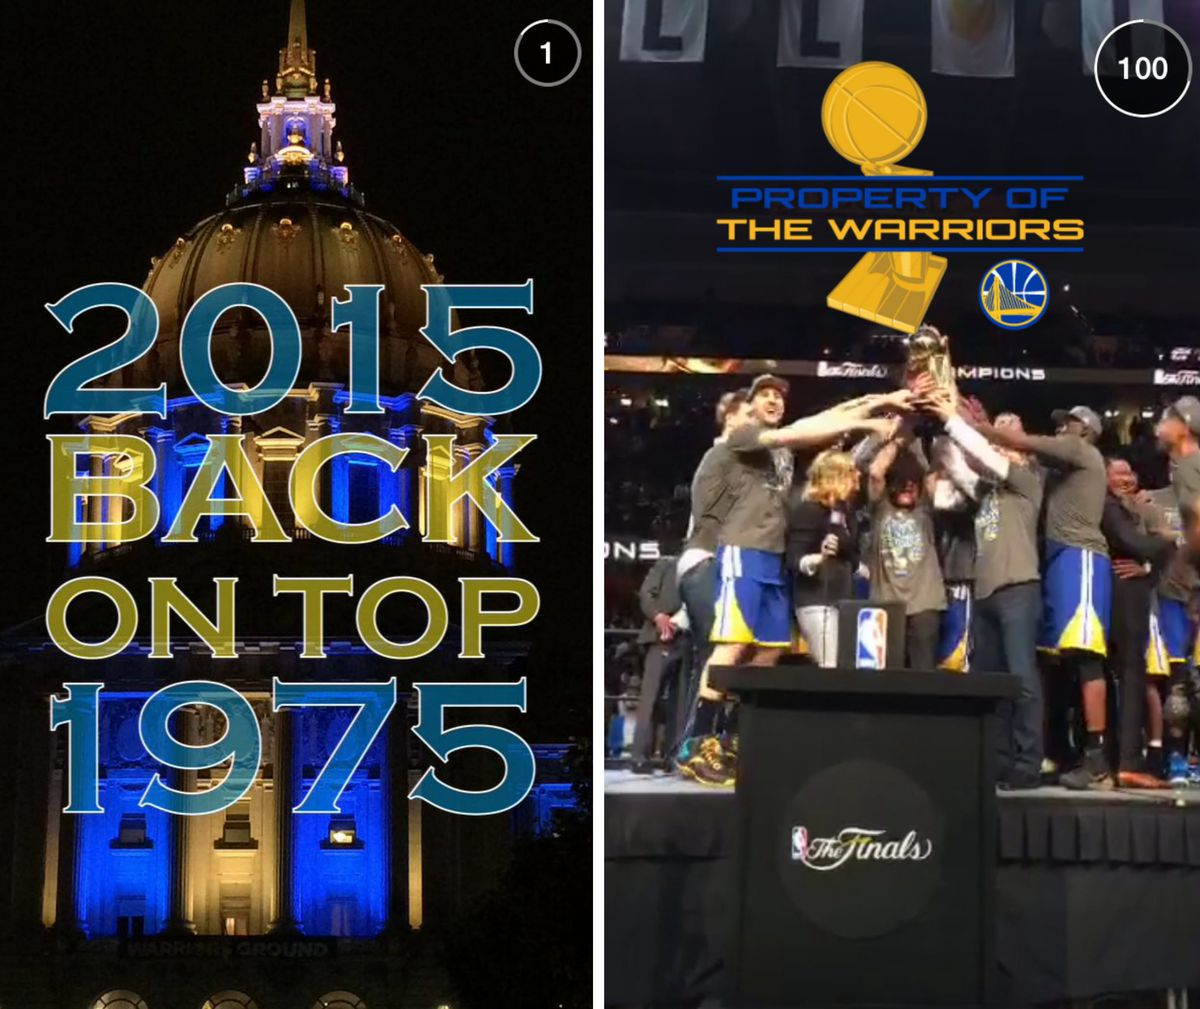 Images from Snapchat's Live Story to celebrate the Golden State Warriors' recent NBA title